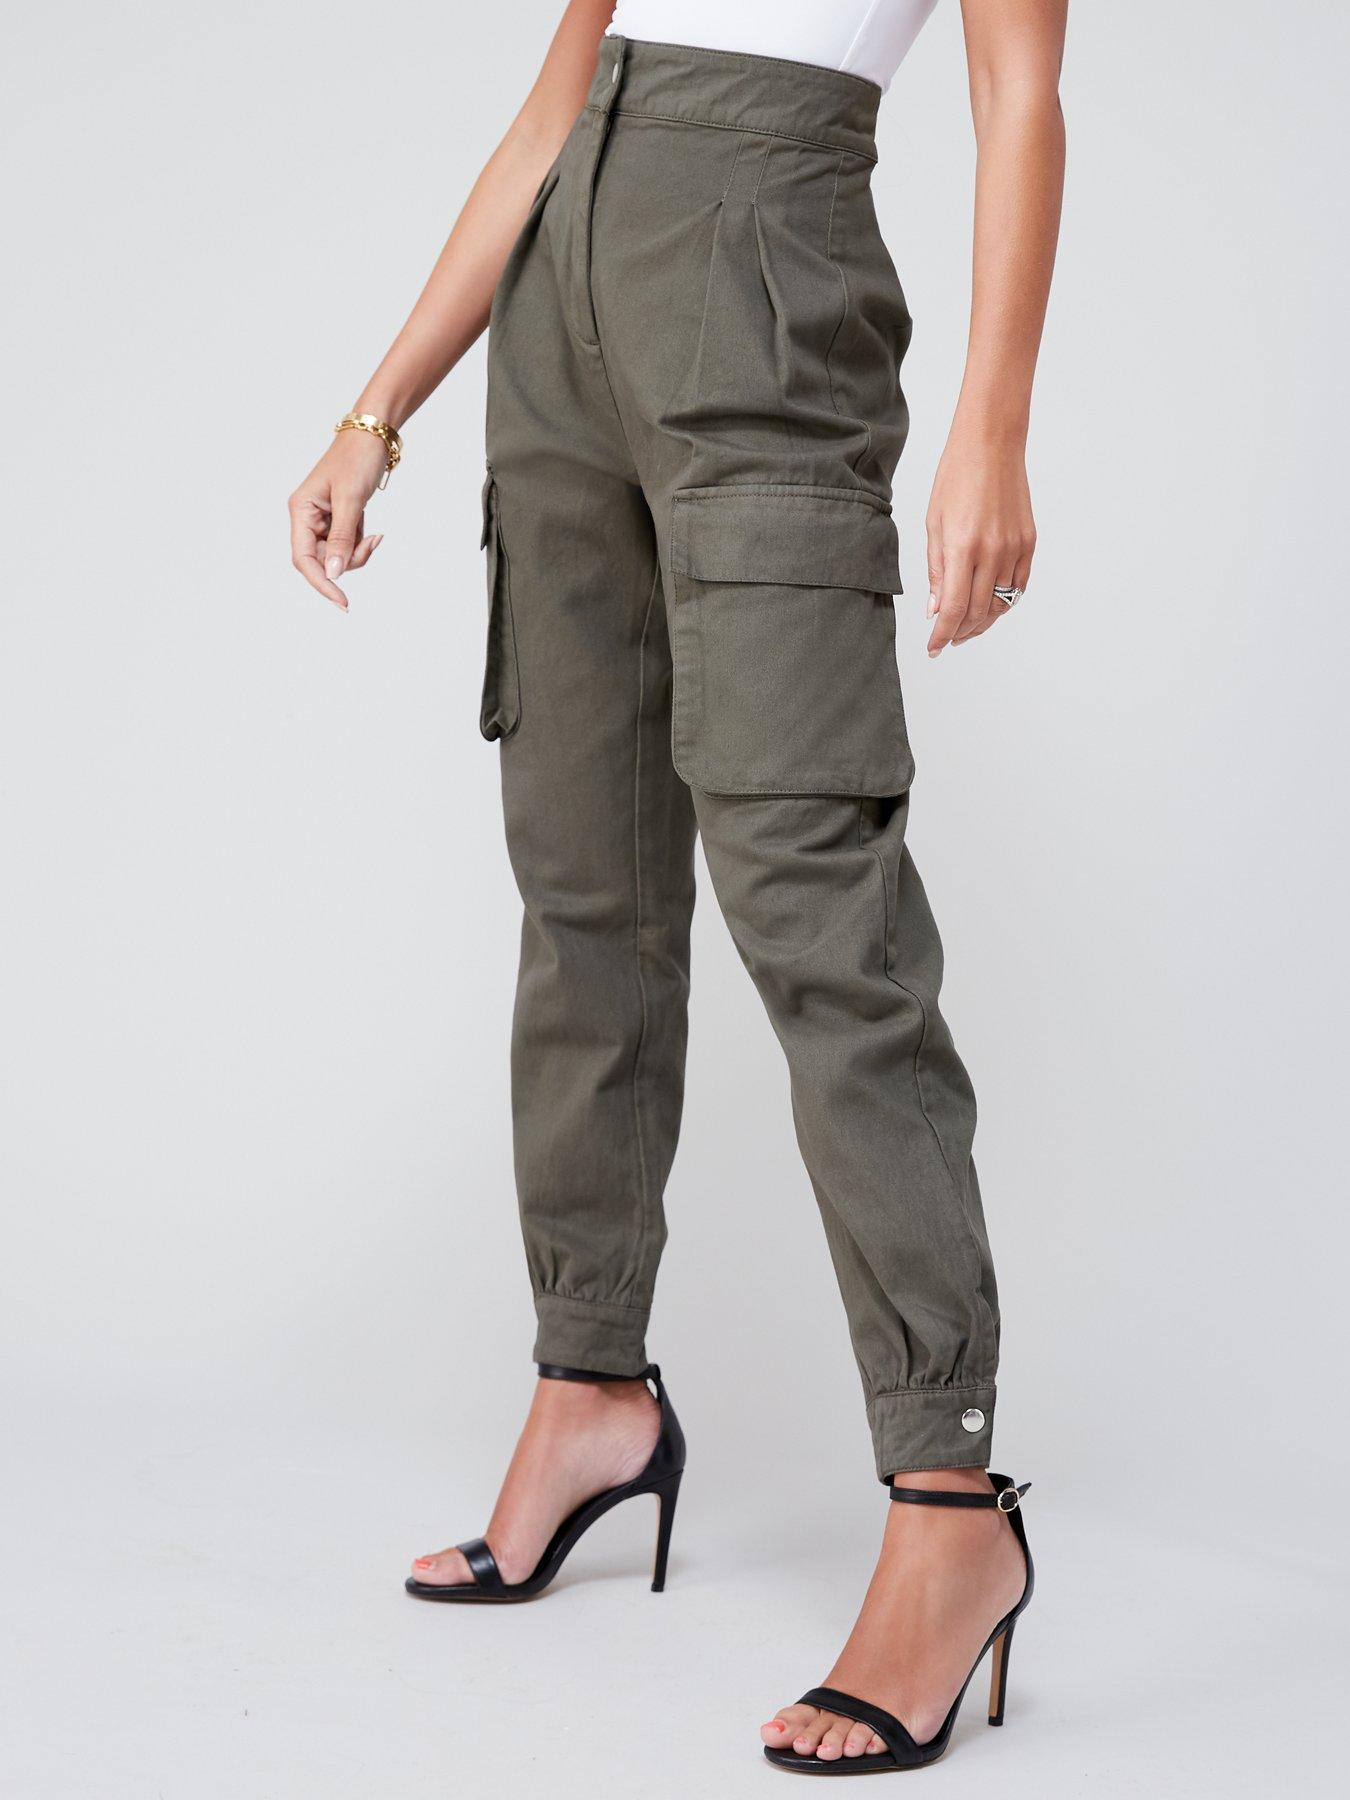 Simply Be Wardrobe Chocolate Ladies Trousers L 29 in Size 14 16 20 24 26 28 UK